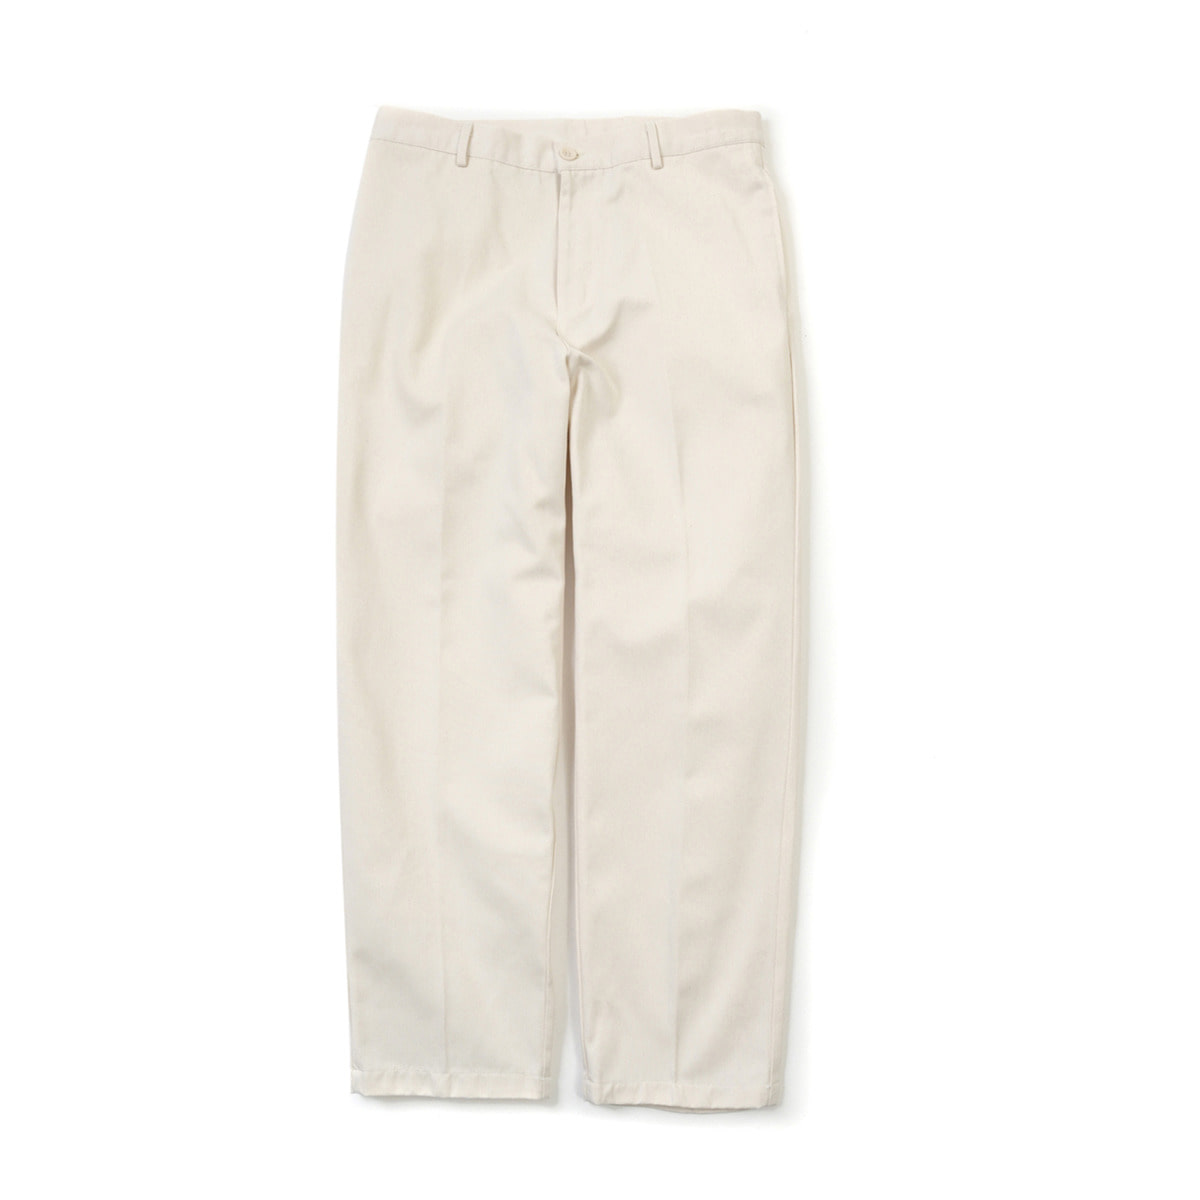 Basic Chino Pants, Ivory